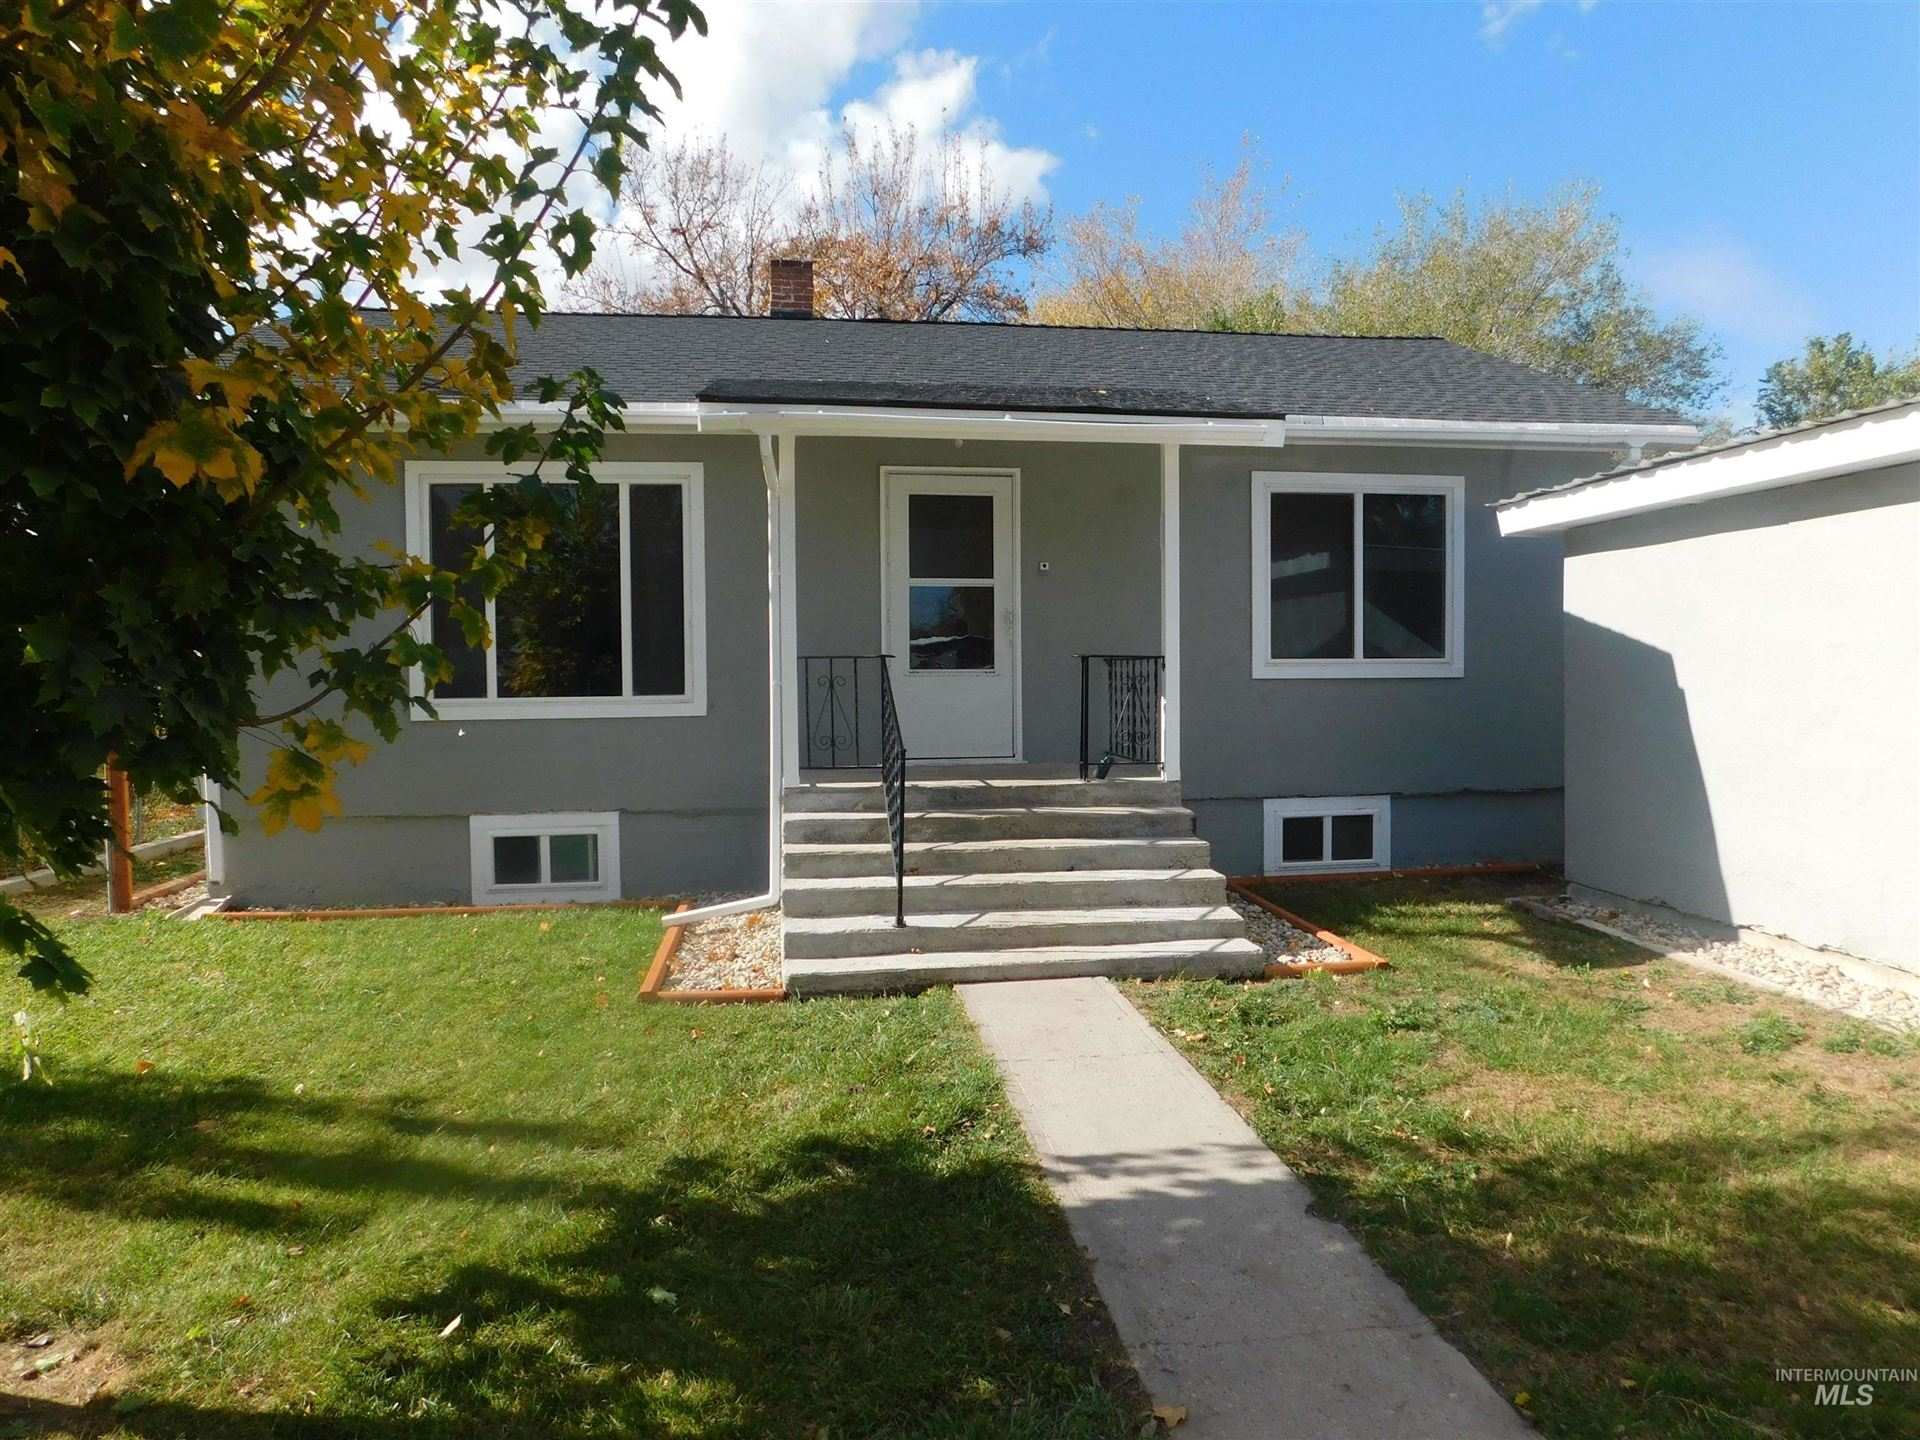 Photo of 115 S 2nd Ave W, Marsing, ID 83639 (MLS # 98823627)